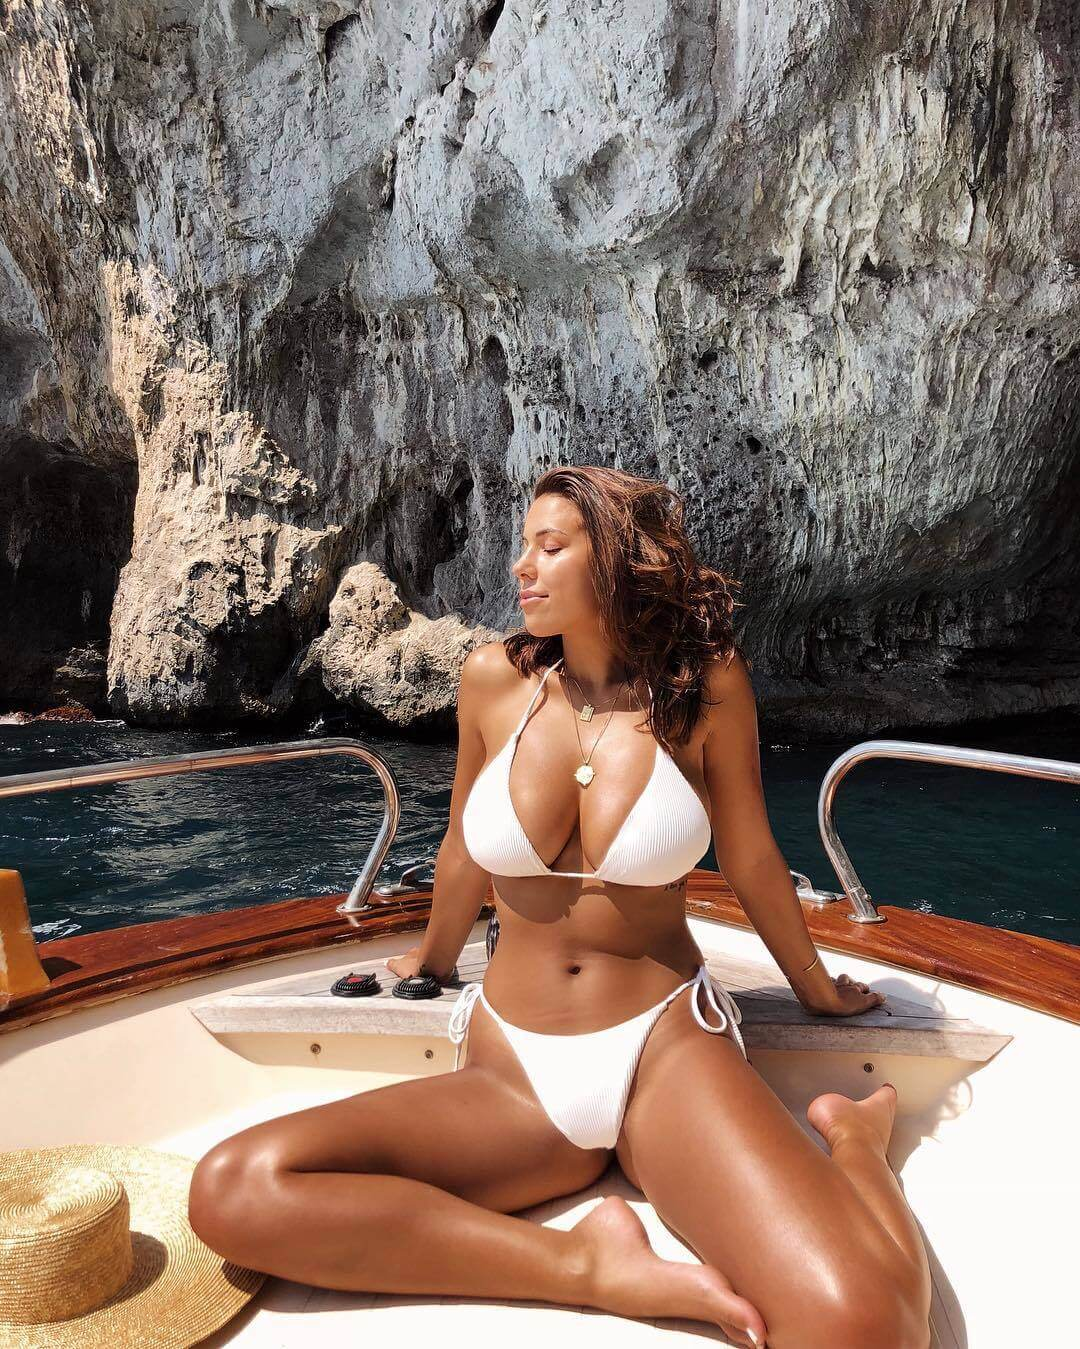 Devin Brugman thighs awesome